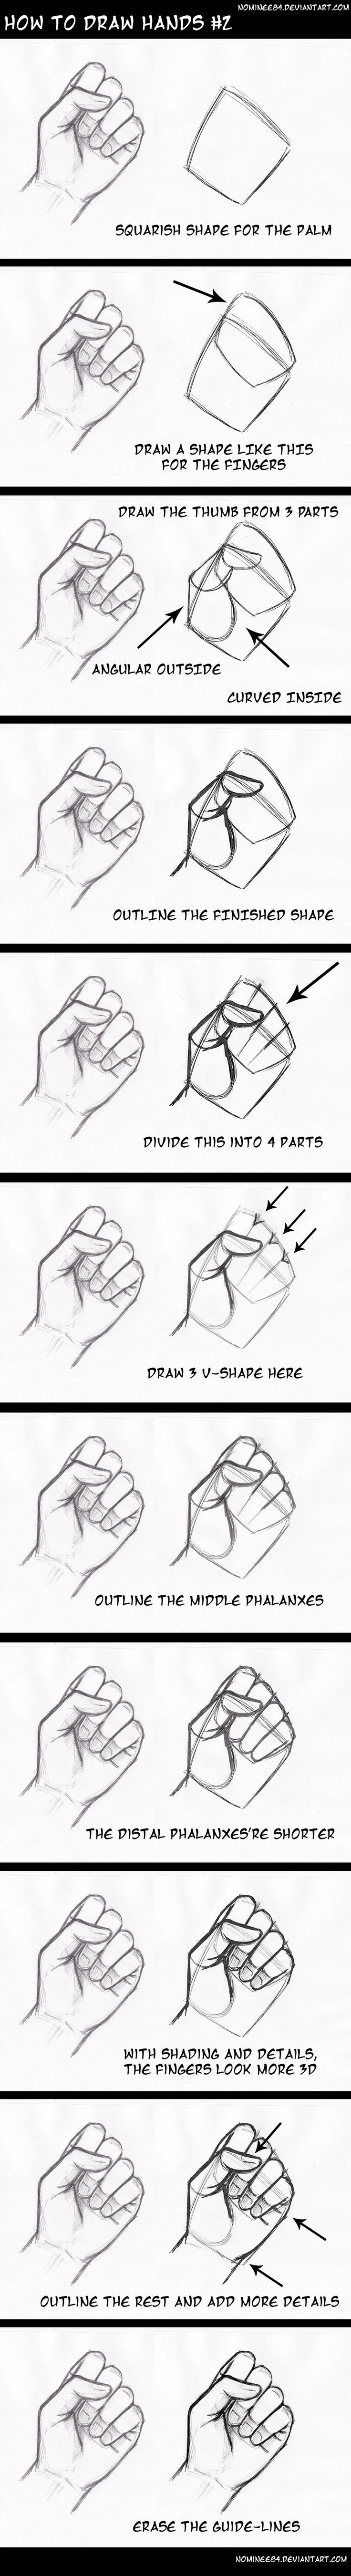 how to draw hands2 by nominee84 on DeviantArt Visit their gallery for other hand tutorials